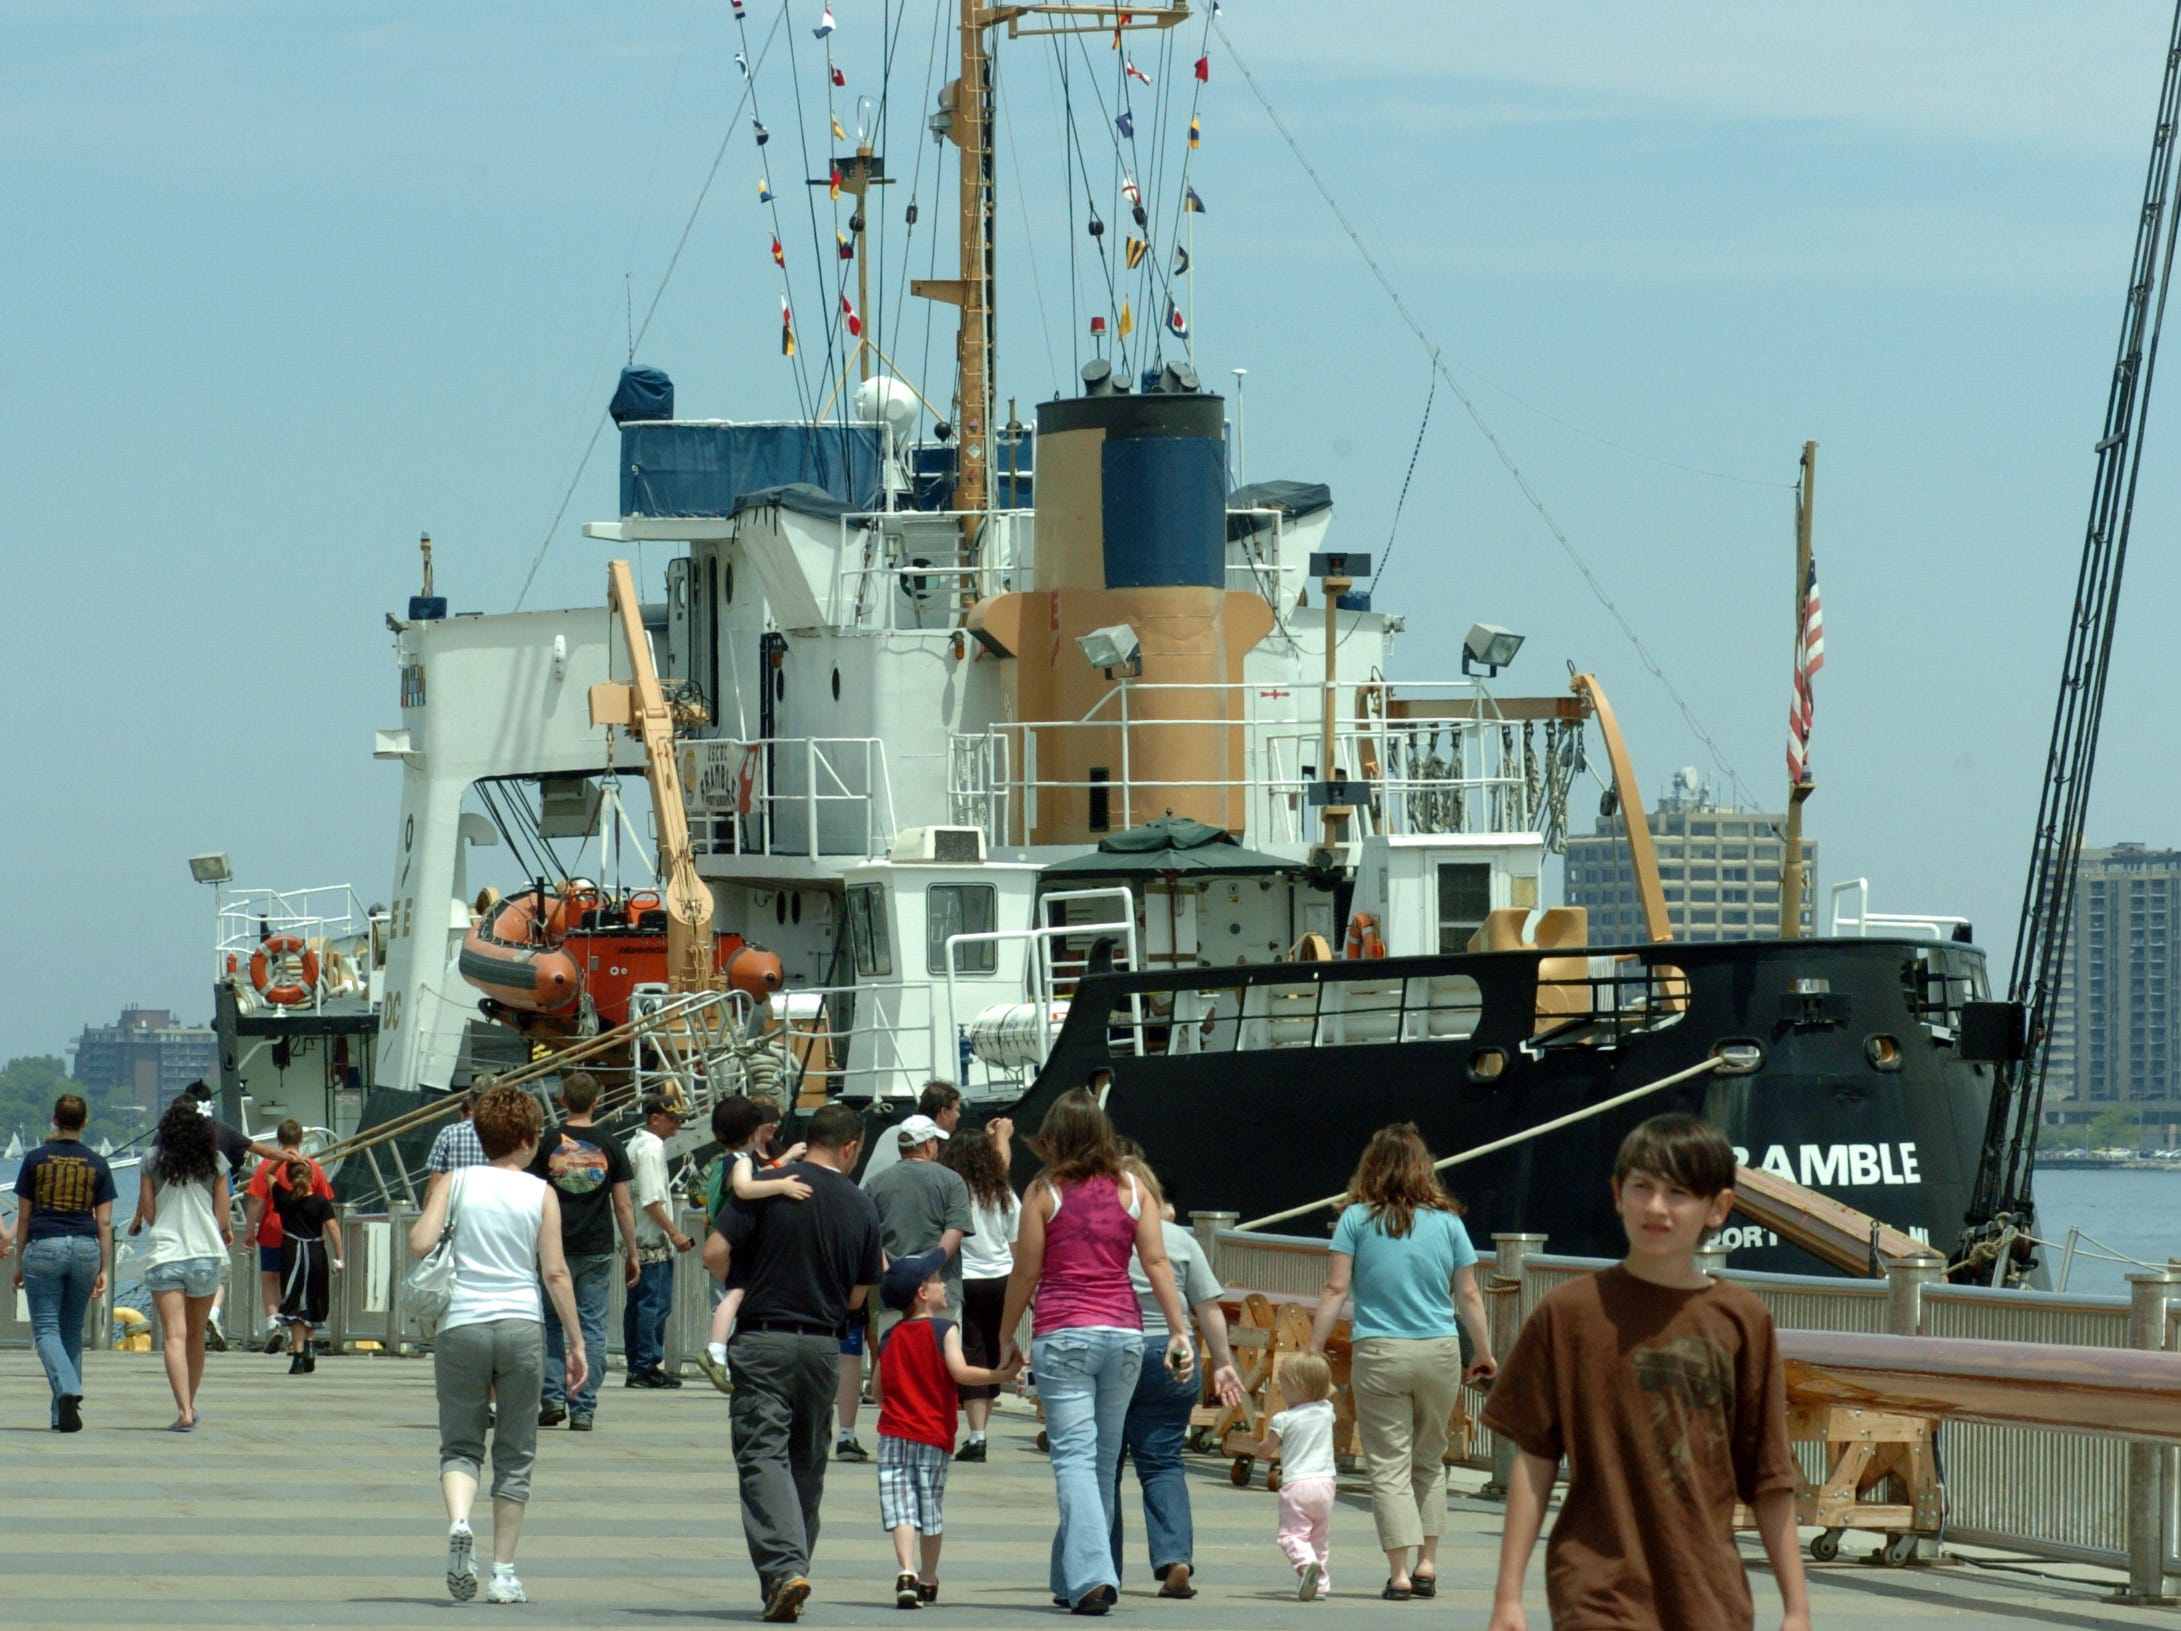 The decommissioned USCG cutter Bramble is seen beyond visitors to the Port Huron Seaway Terminal, Saturday June 5, 2010, during the Be a Tourist in Your Own Towns event.